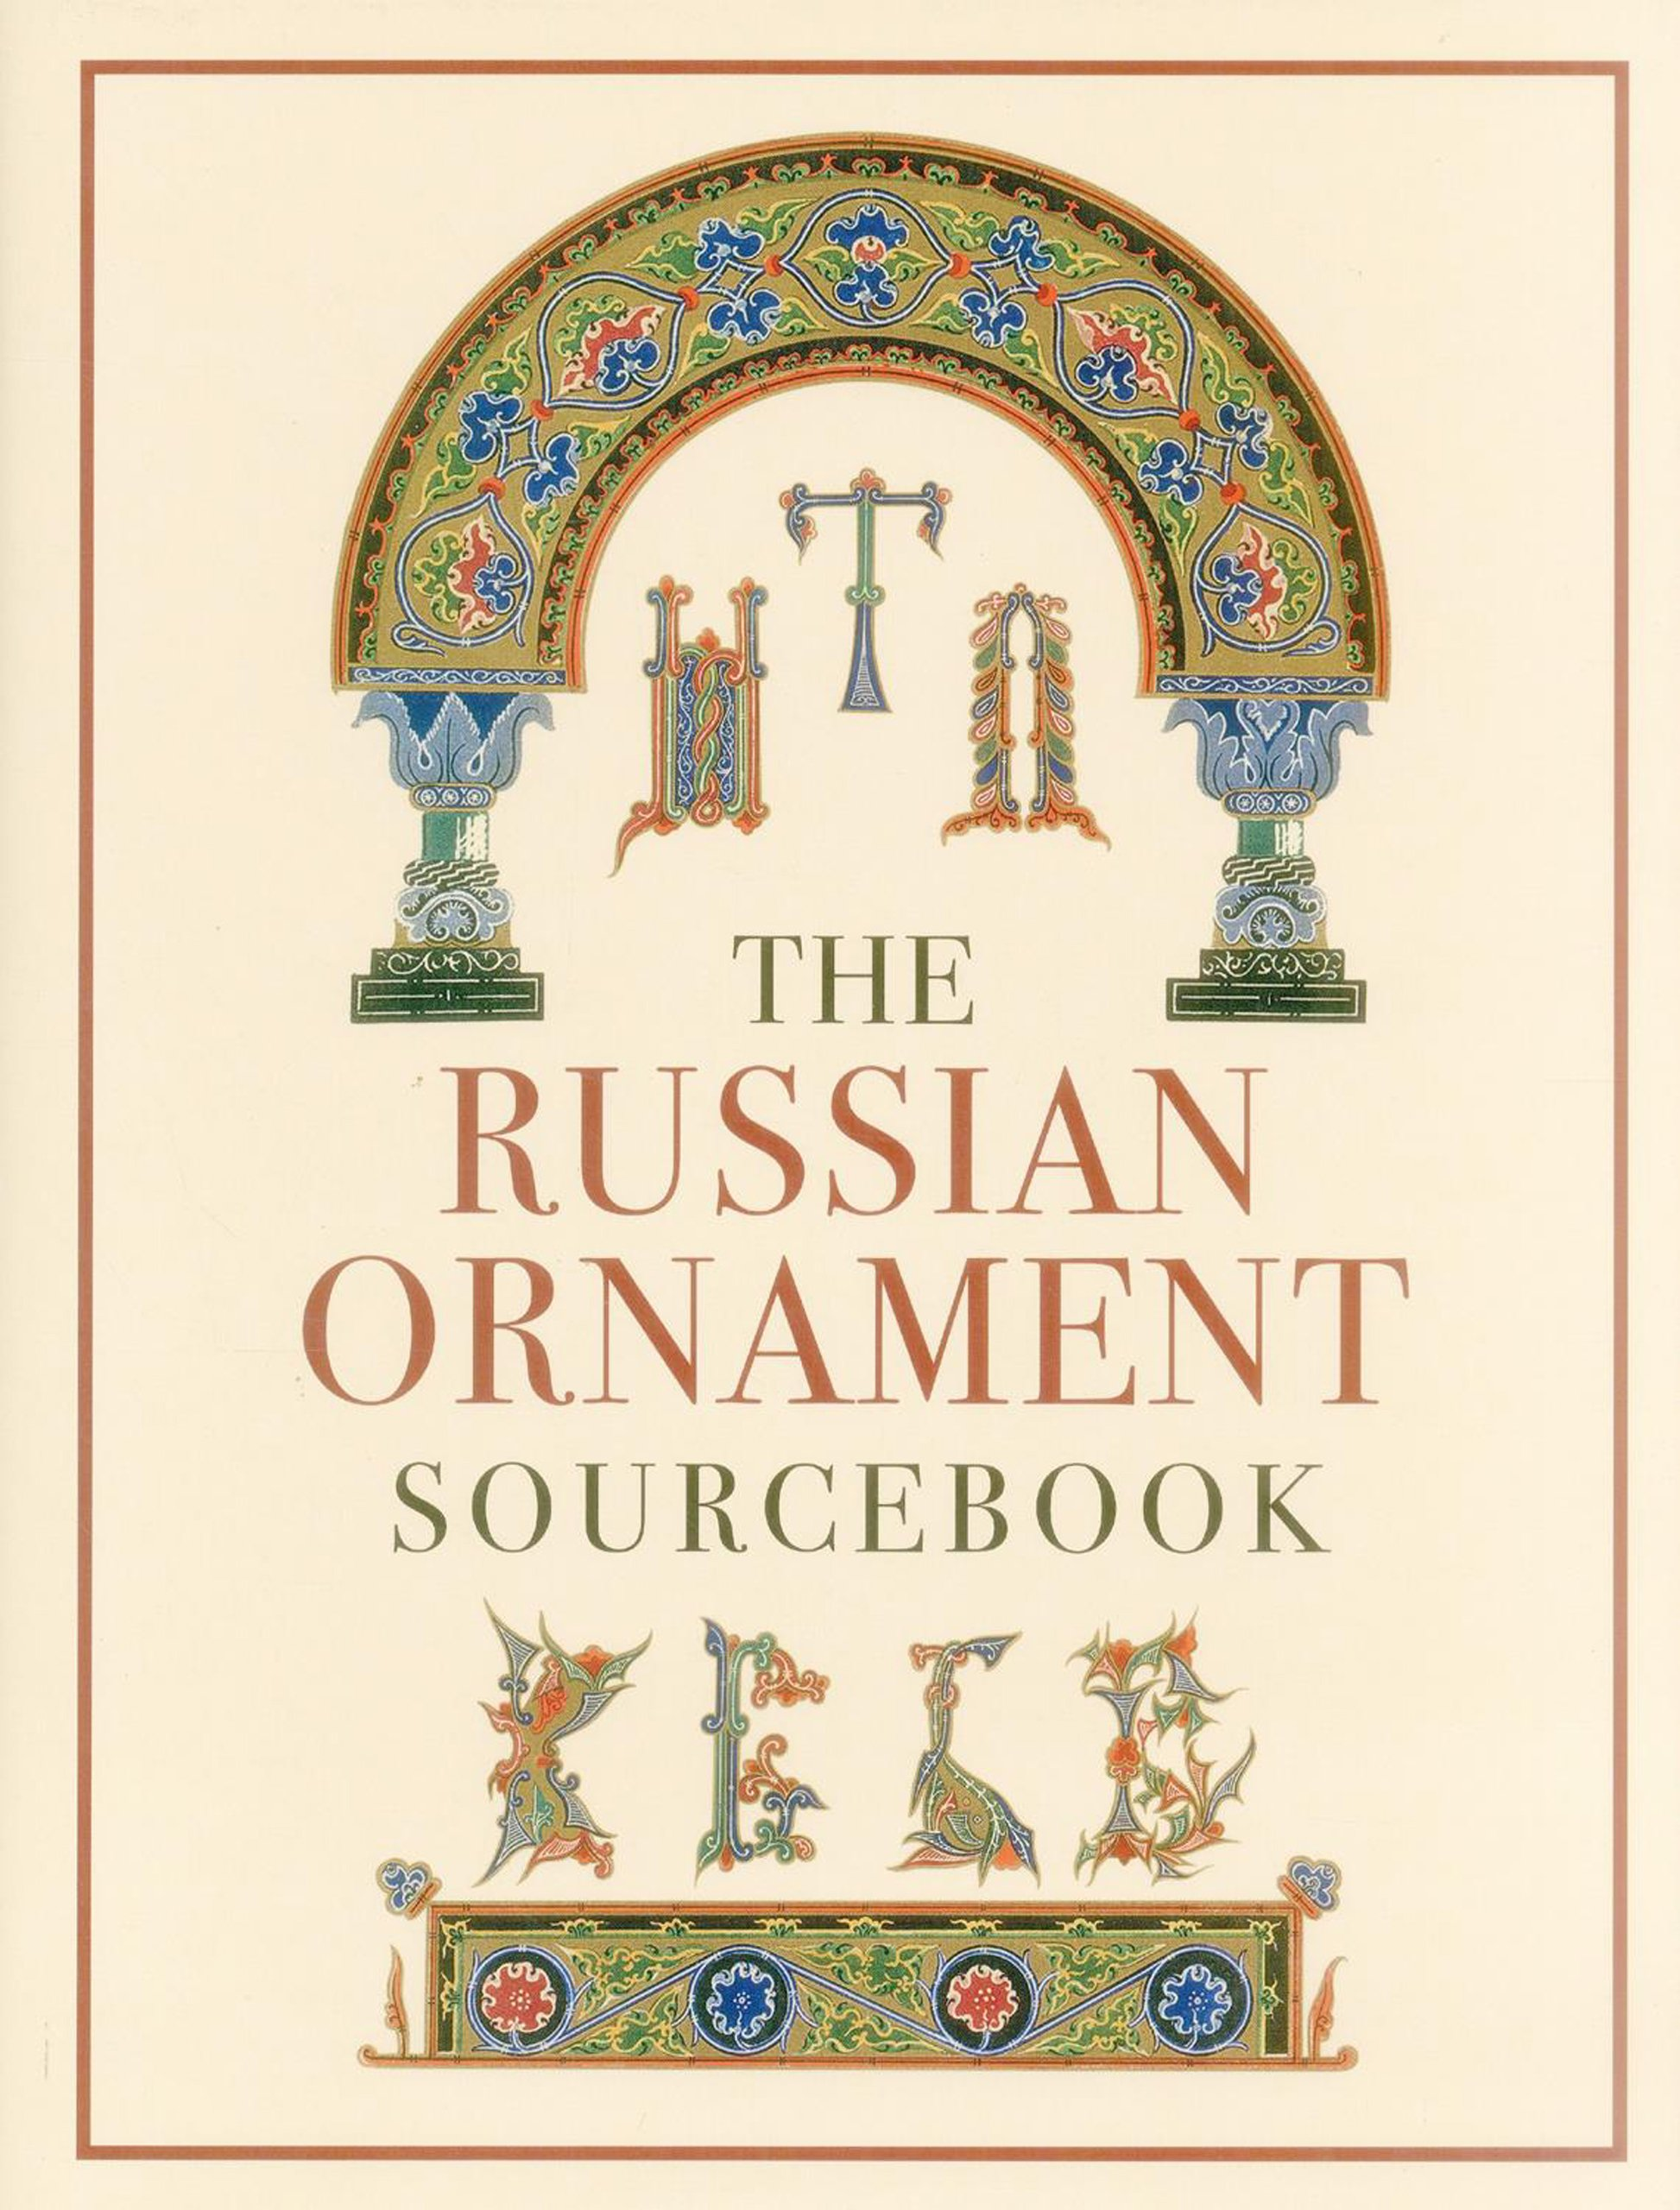 The Russian Ornament Sourcebook: 10th-16th Centuries